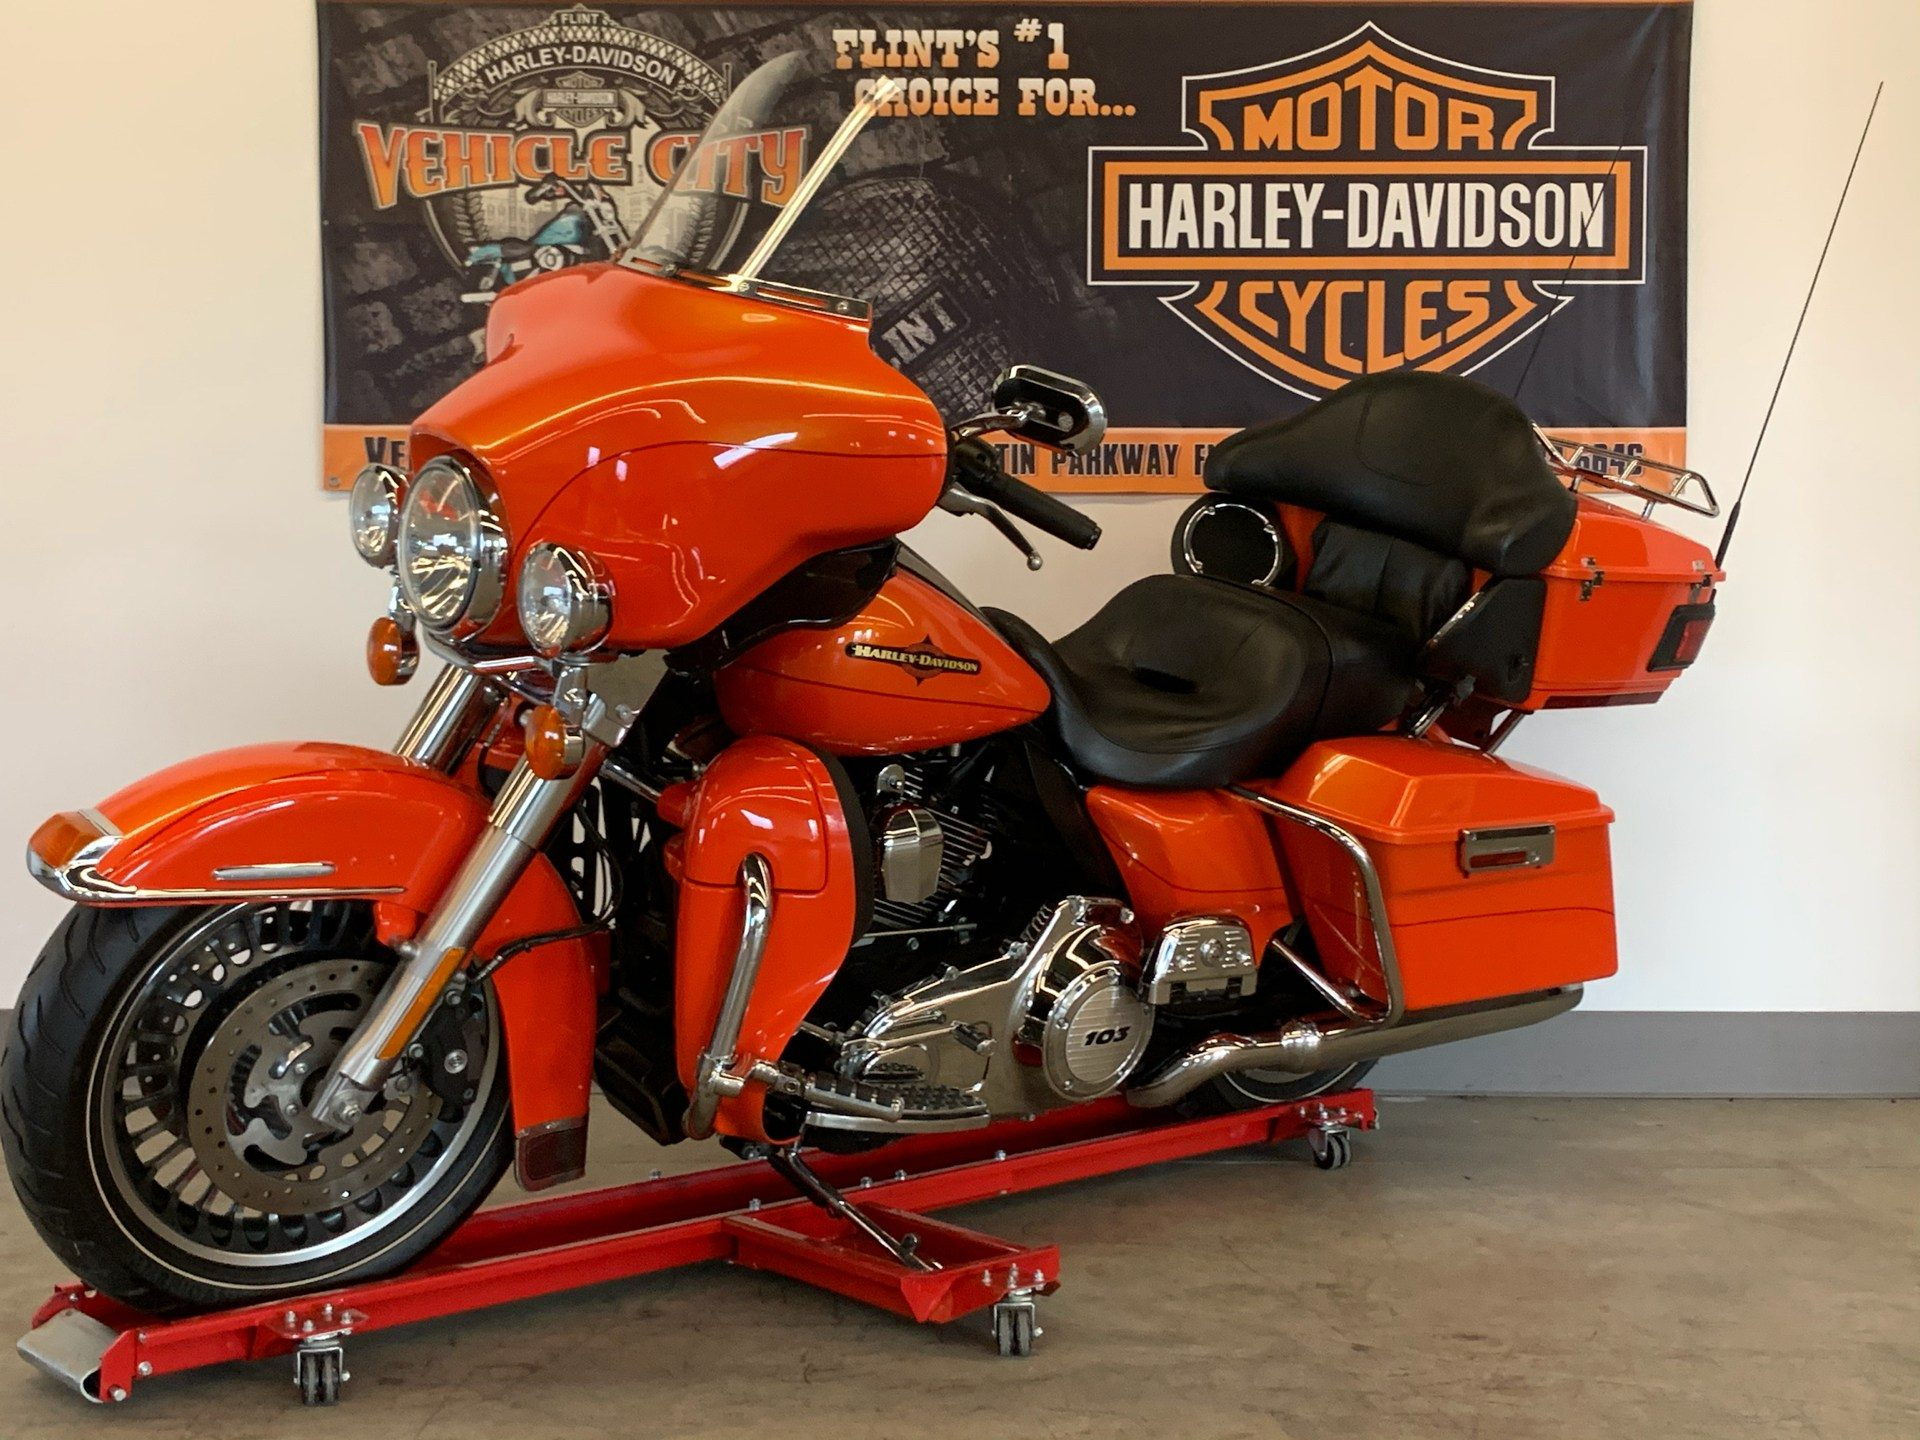 2012 Harley-Davidson Electra Glide® Ultra Limited in Flint, Michigan - Photo 4